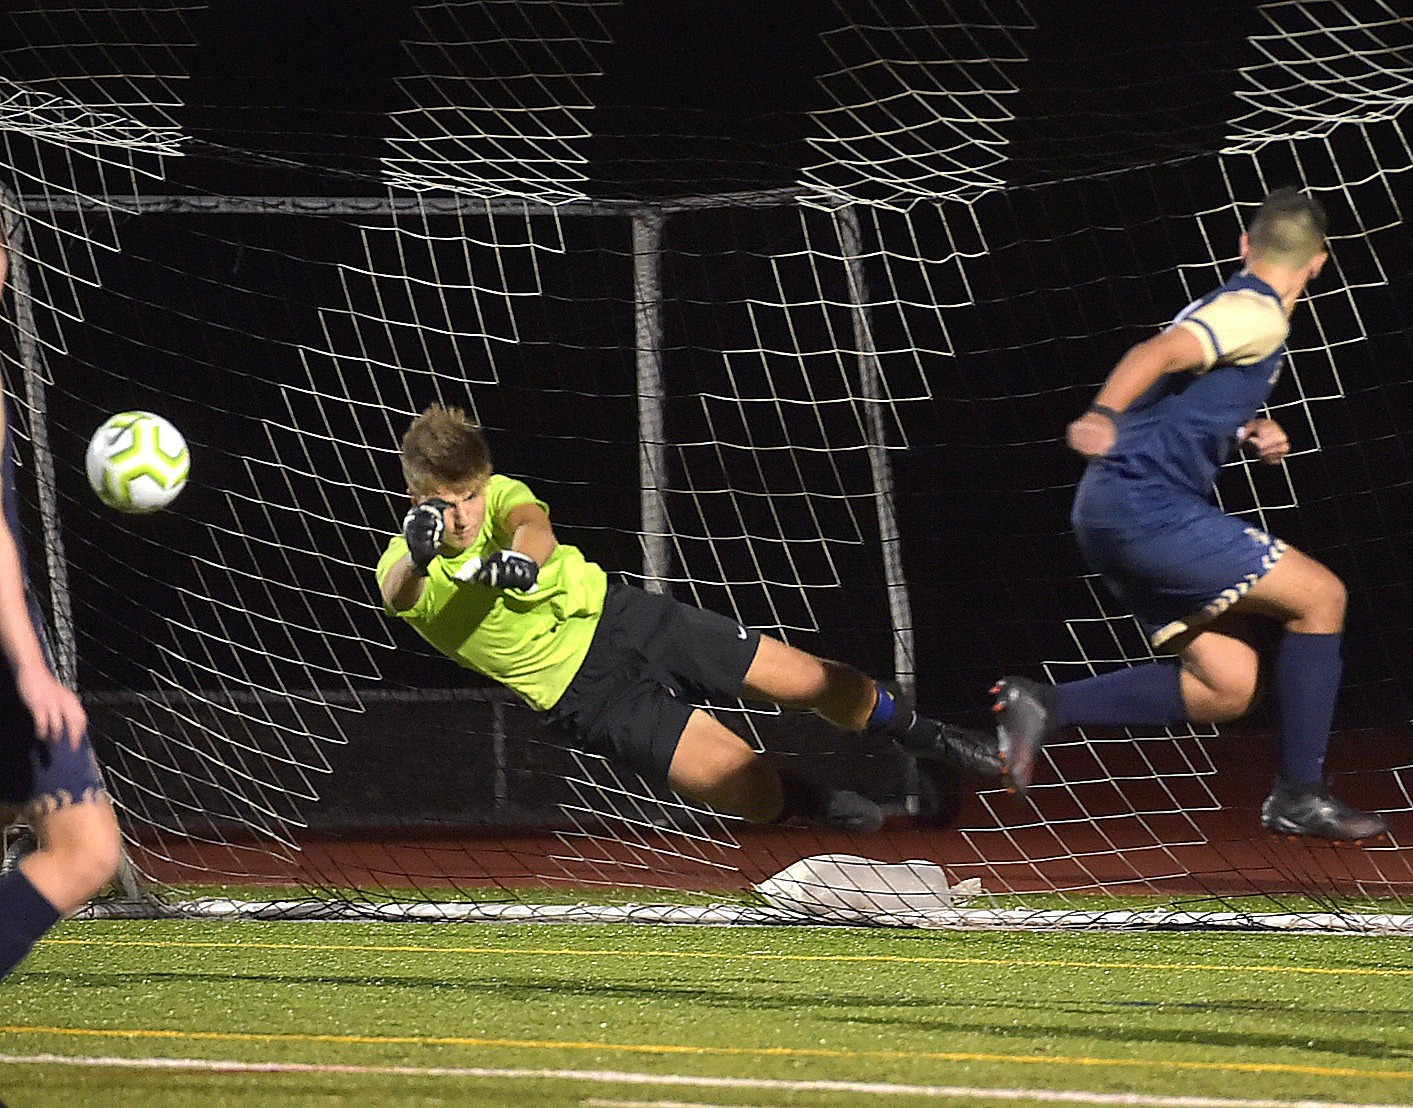 Great Valley goalkeeper Quinton Wrabley makes a save on a redirect byWest Chester Rustin's (9) Dimitri Makris in the second period as the Patriots defeated the Golden Knights 1-0 on a goal by Karl Brandt.